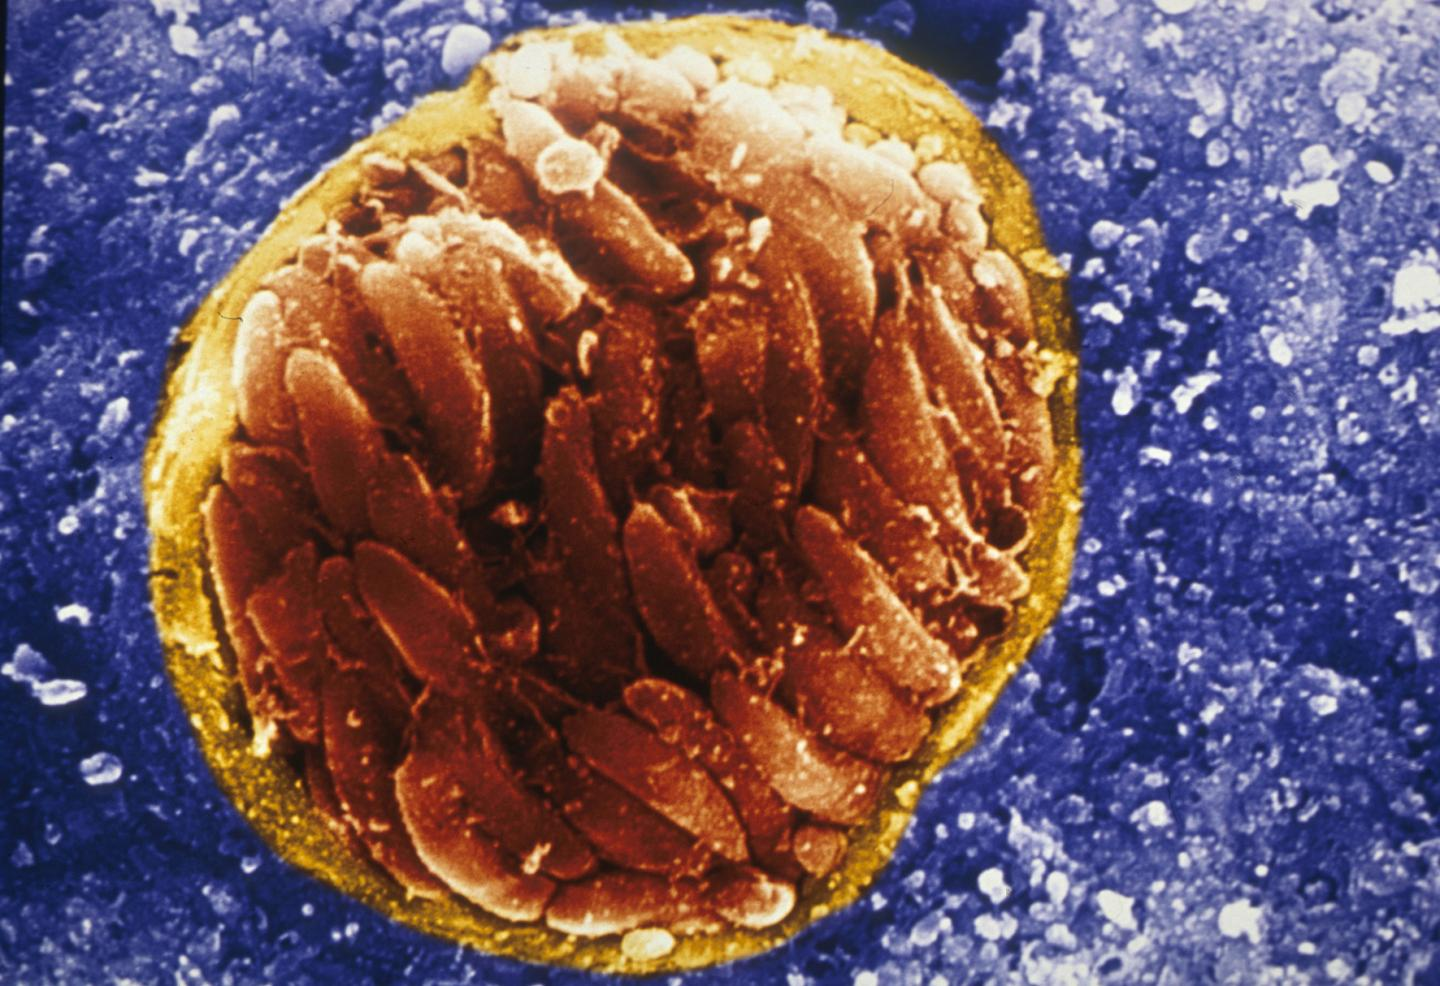 Rage Disorder Linked with Parasite Found in Cat Feces